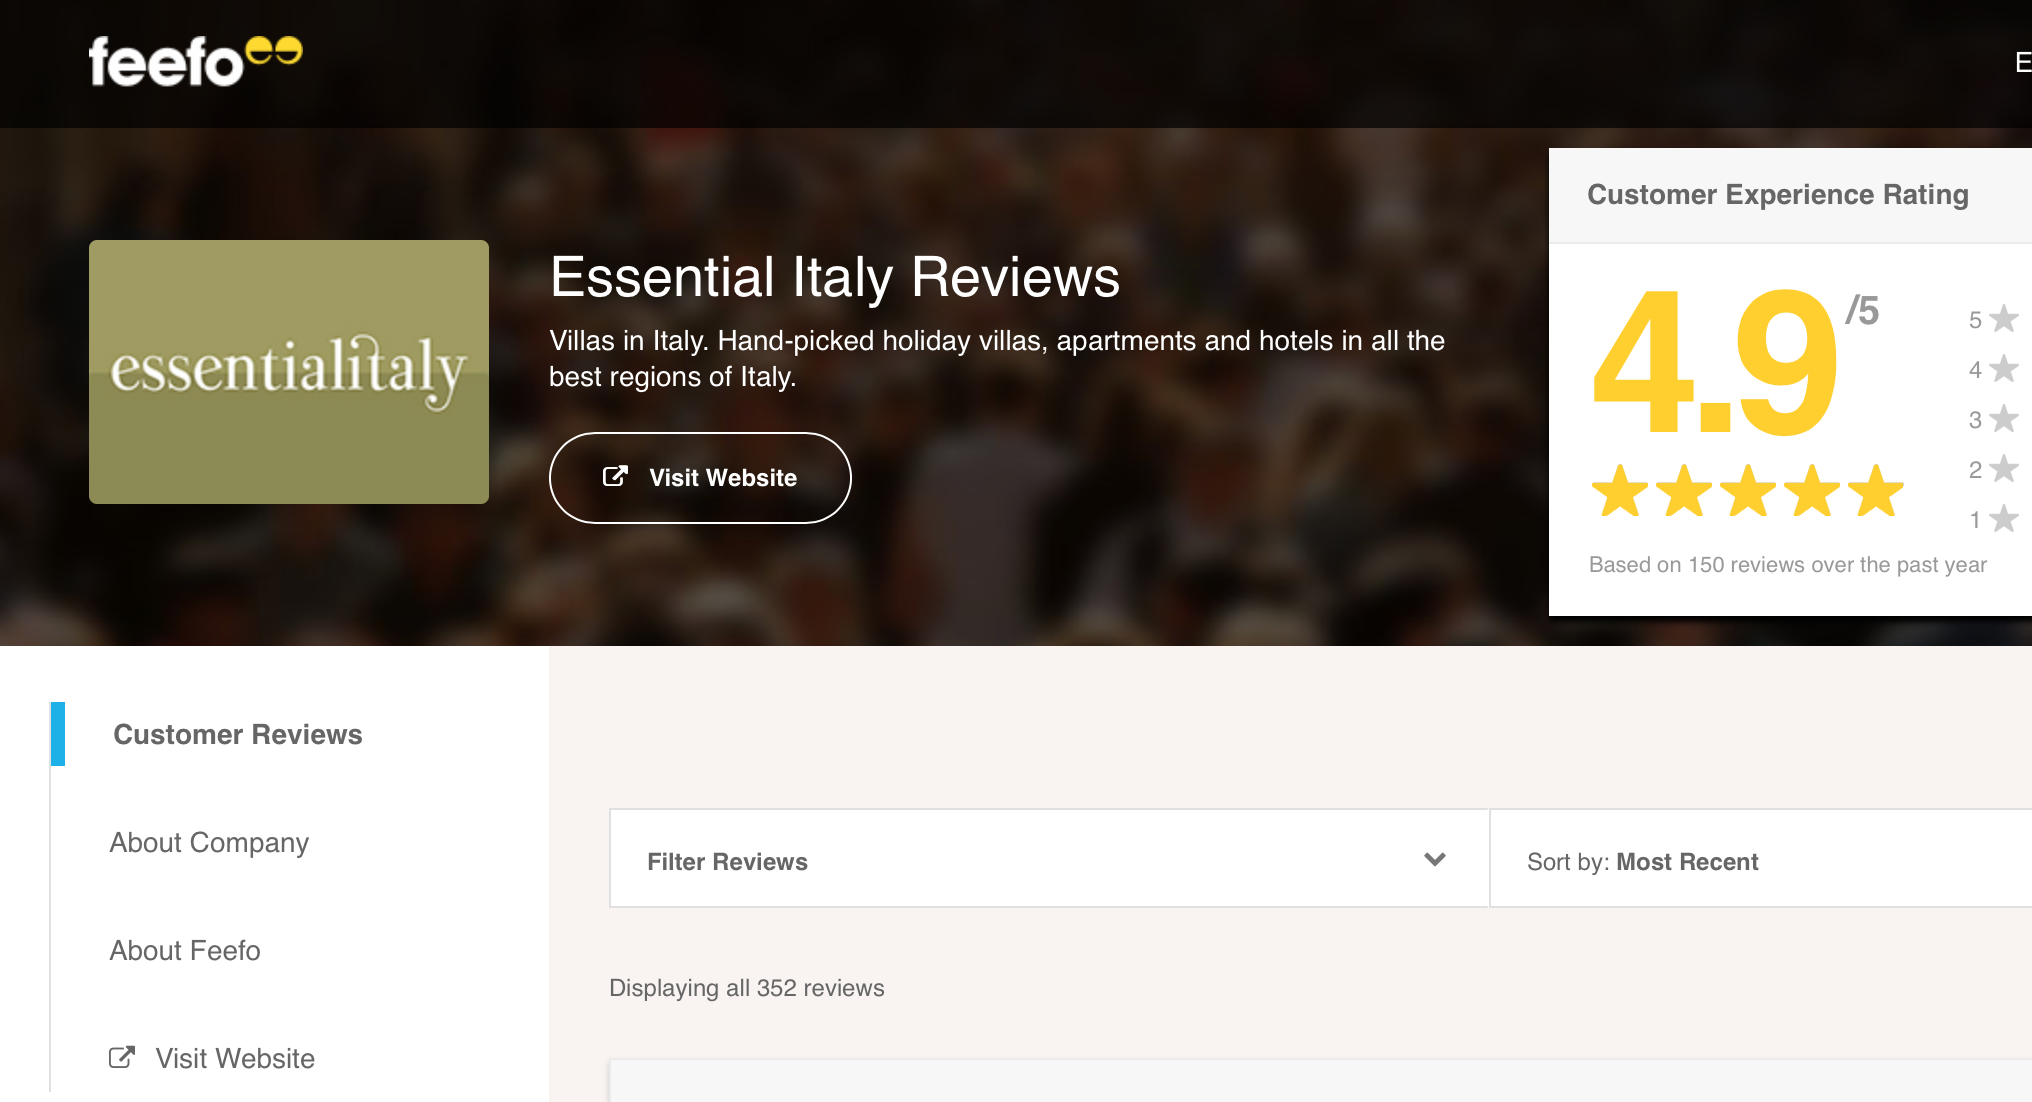 Feefo Reviews for Essential Italy